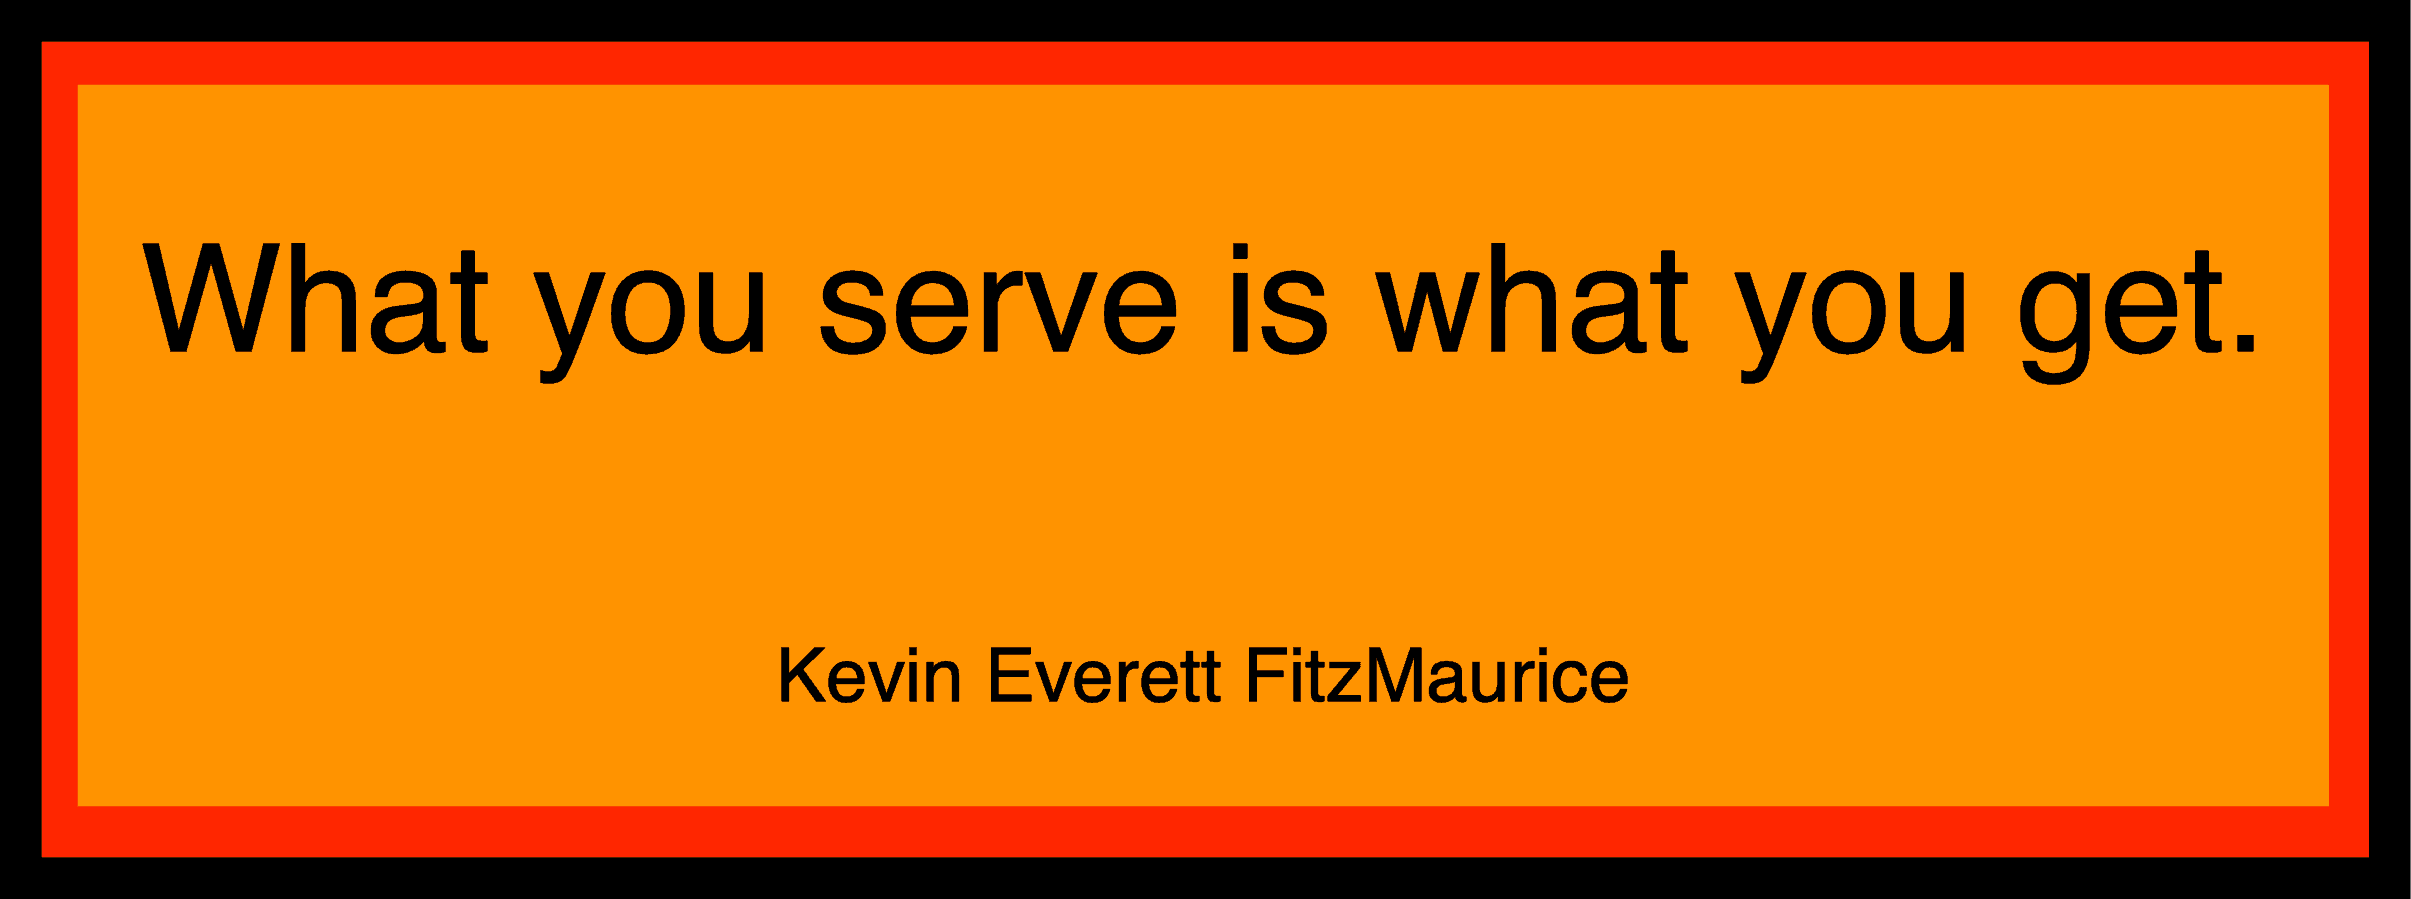 What you serve is what you get.